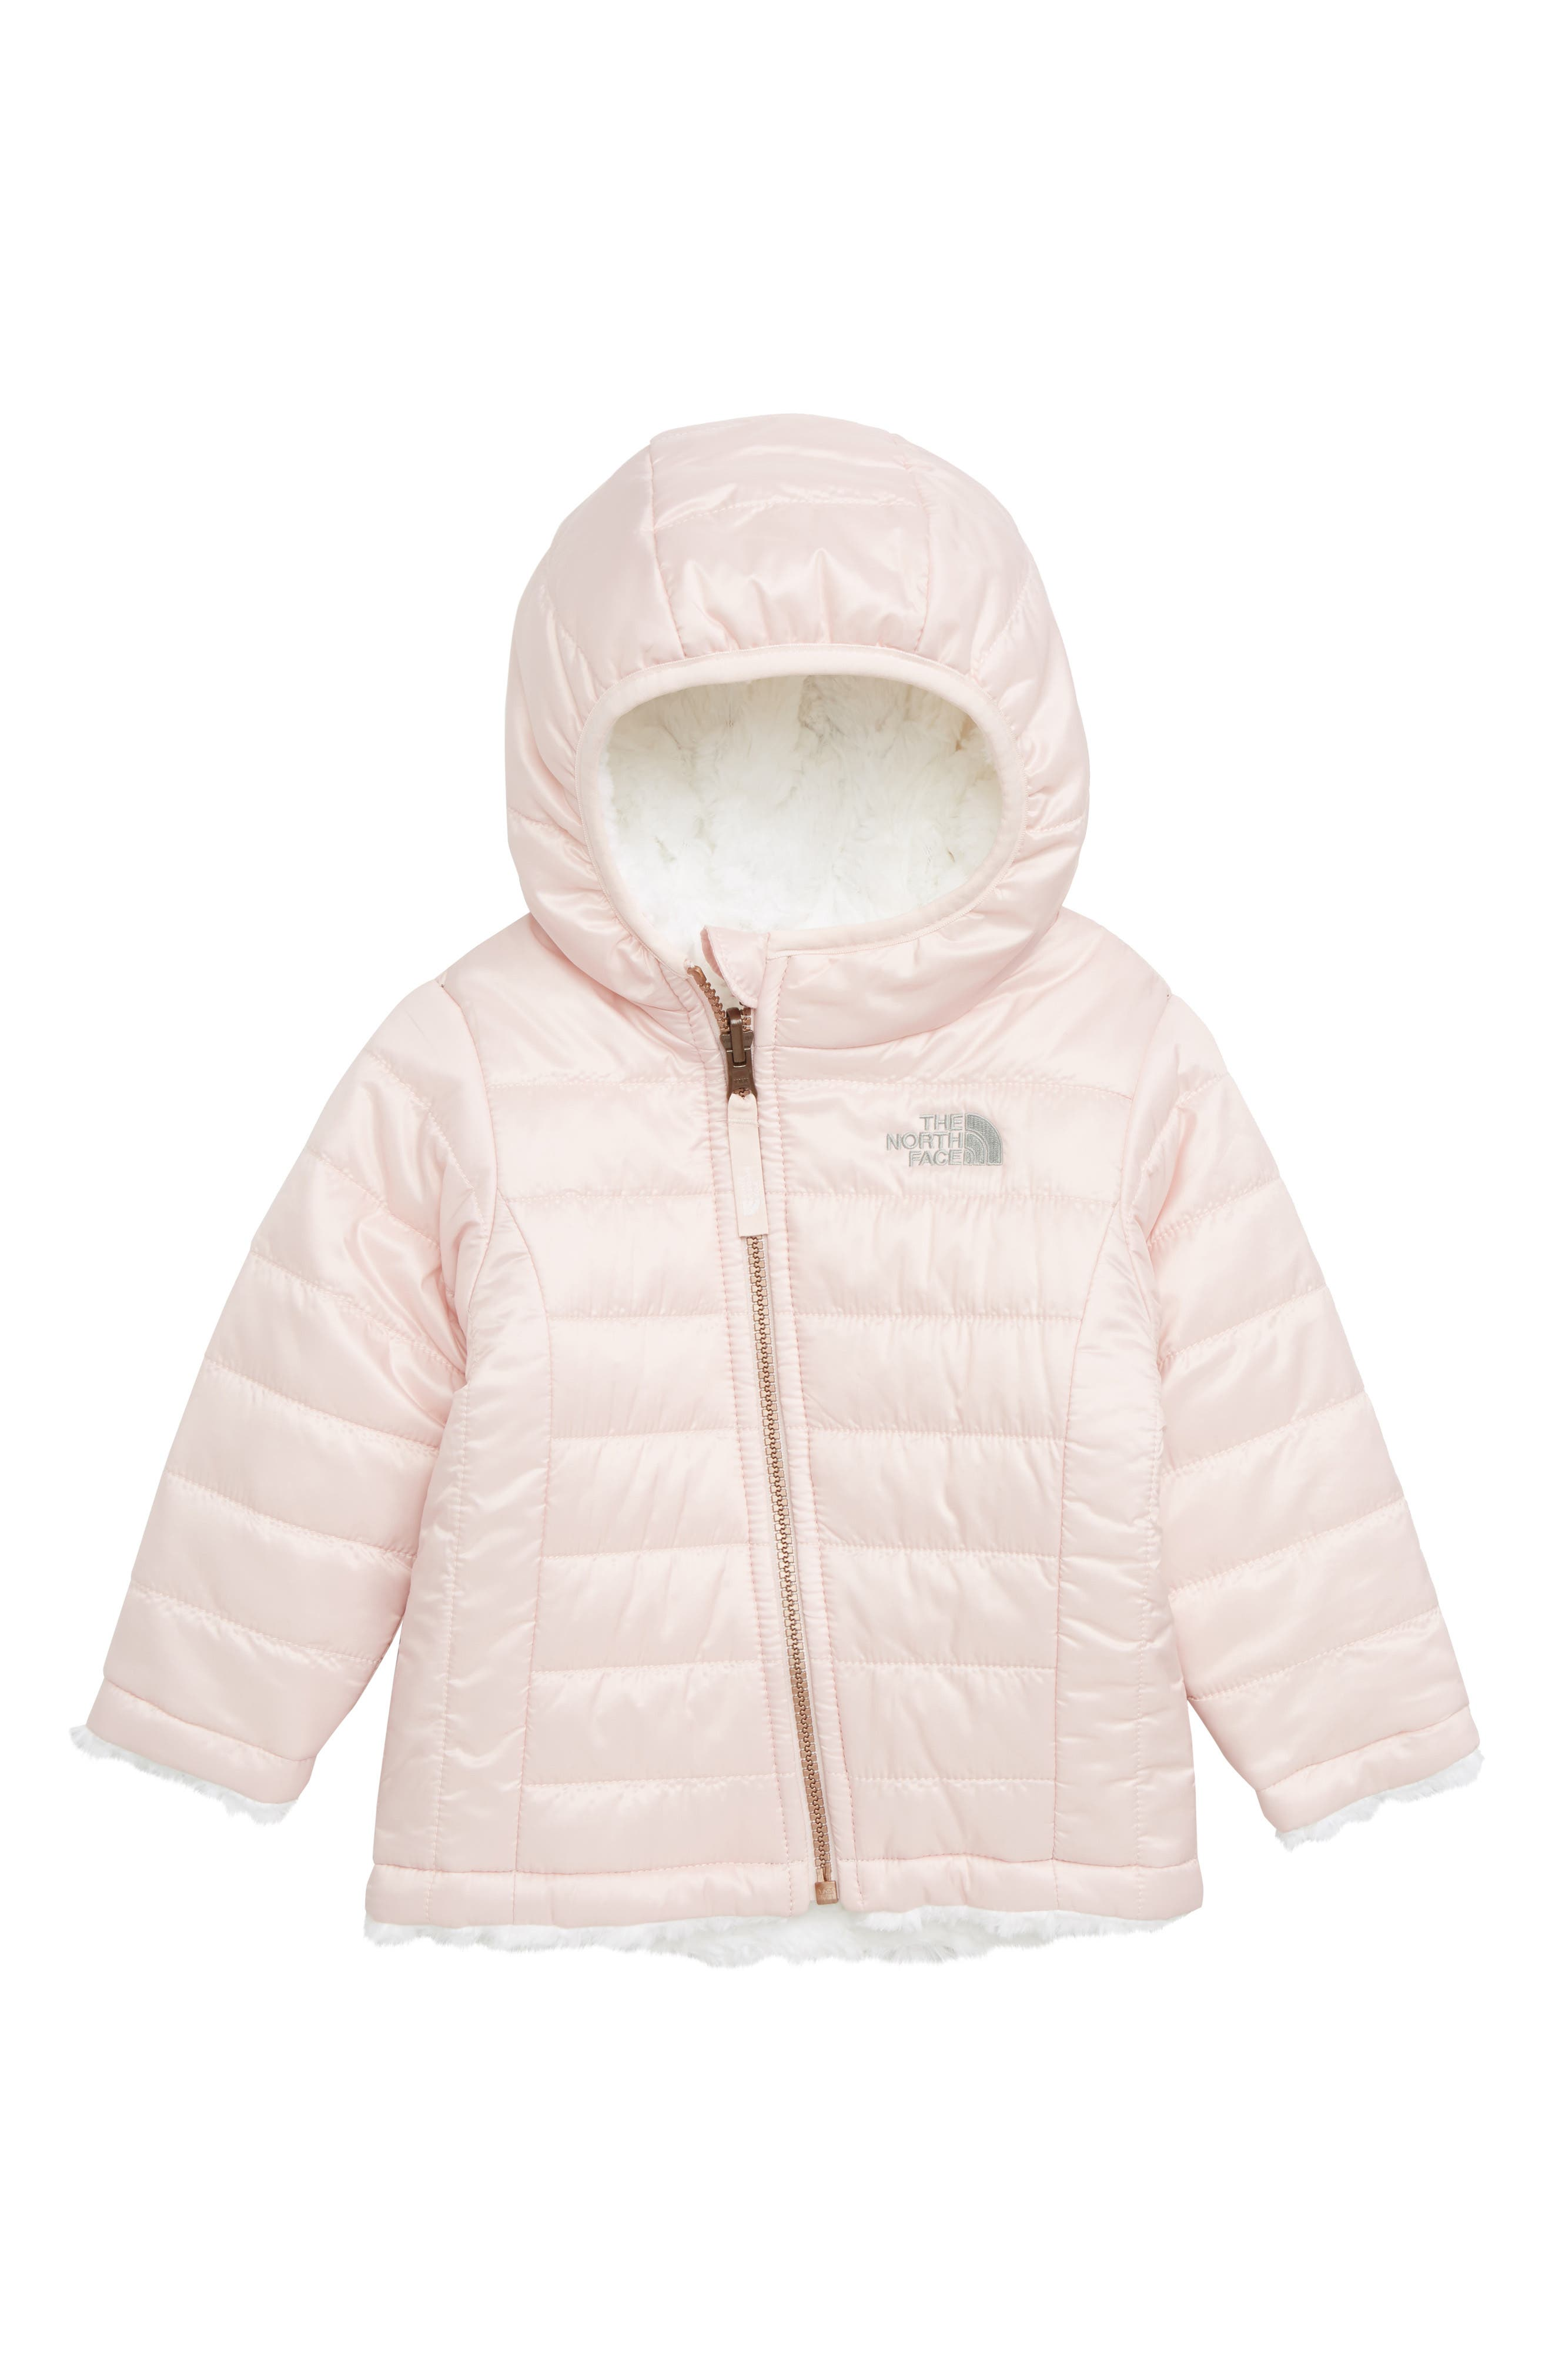 Mossbud Swirl Reversible Water Repellent Jacket,                             Main thumbnail 1, color,                             PURDY PINK